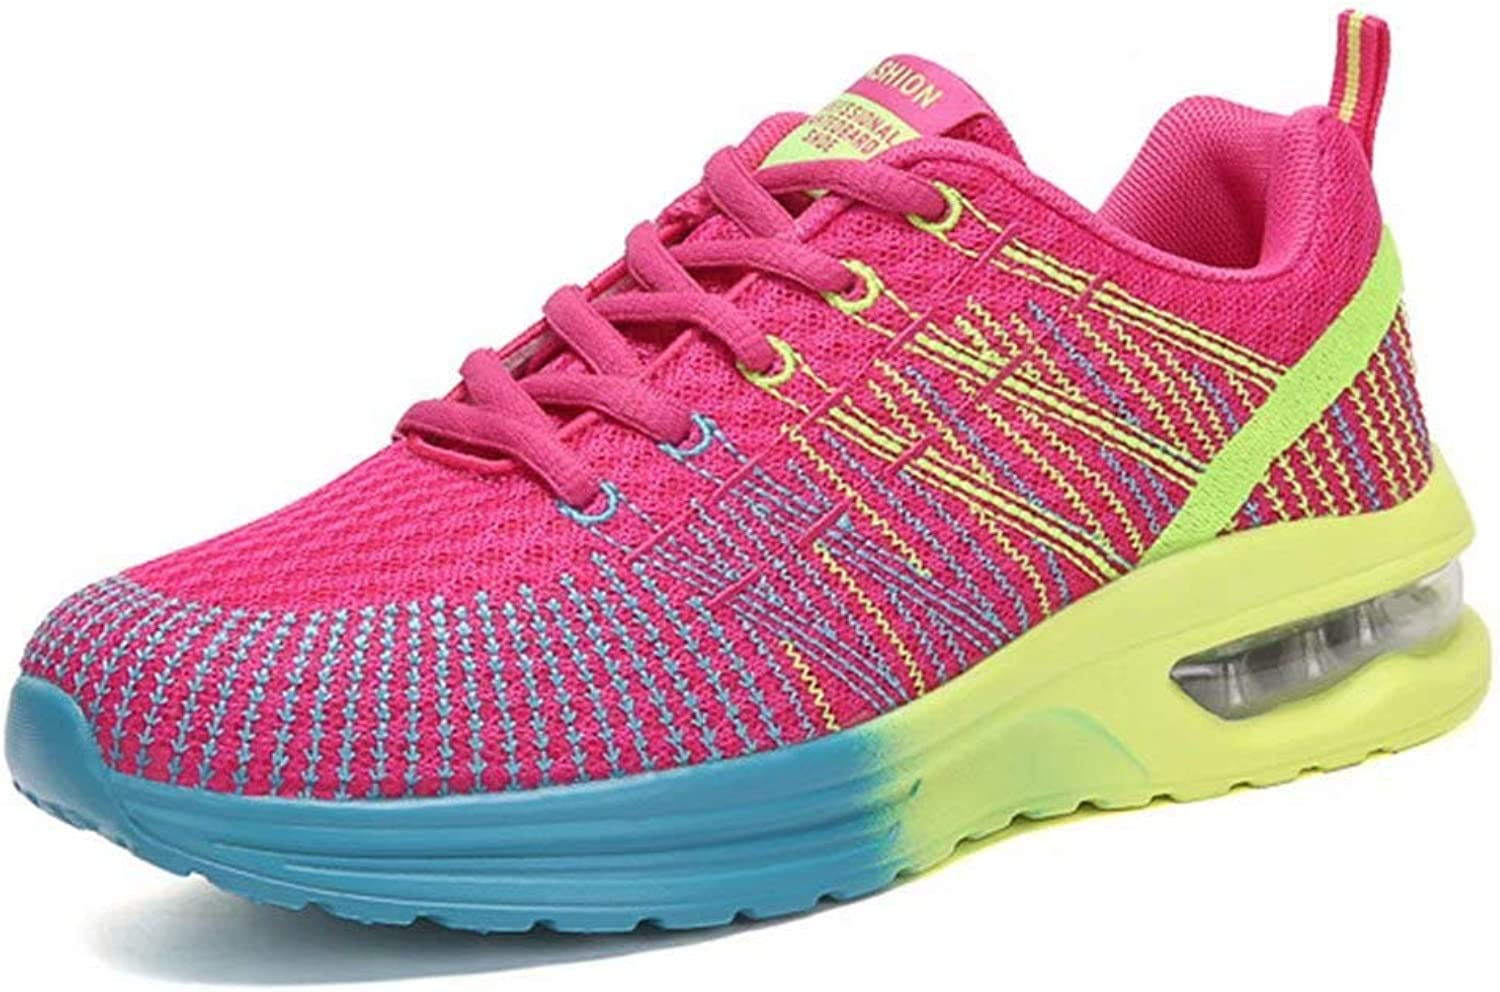 JHY Running shoes Women Air Fitness Sport Cacual Sneakers